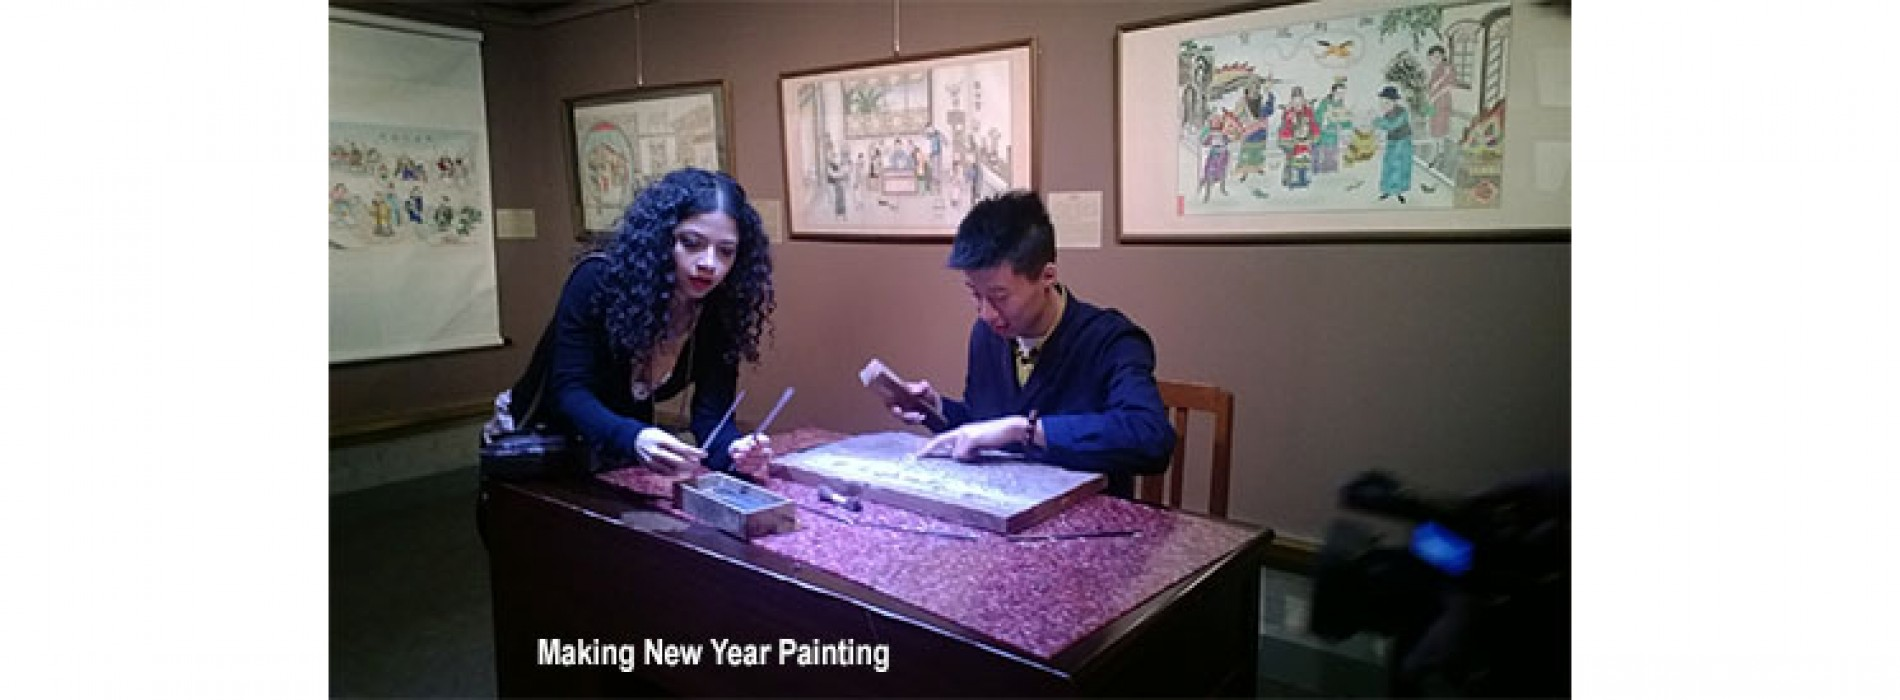 Yangliuqing New Year Painting: a unique art form of Chinese folk culture